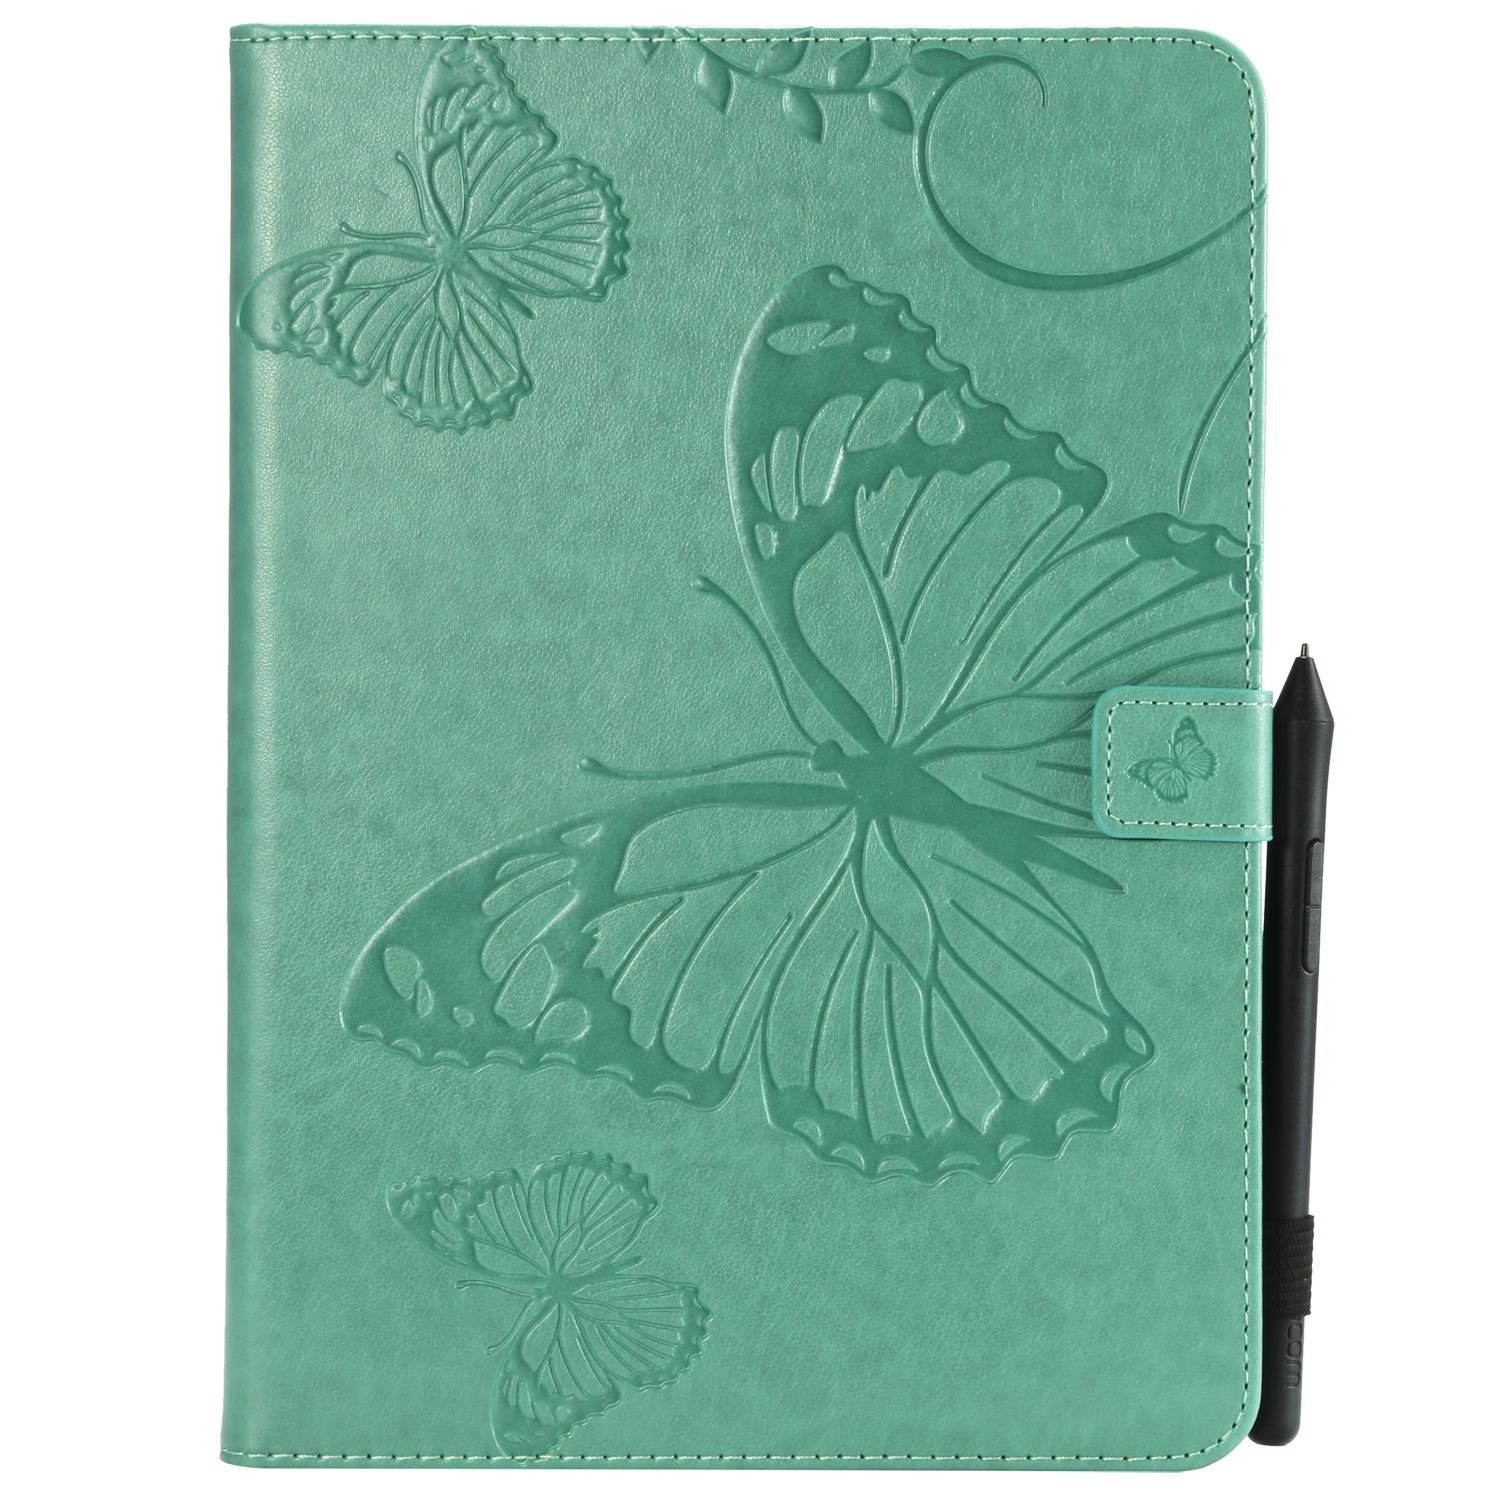 For iPad 5/6/air1/air2 9.7 Fashion Butterfly Embossed PU Leather Magnetic Closure Stand Case Auto Wake/Sleep Cover with Pen Slot green